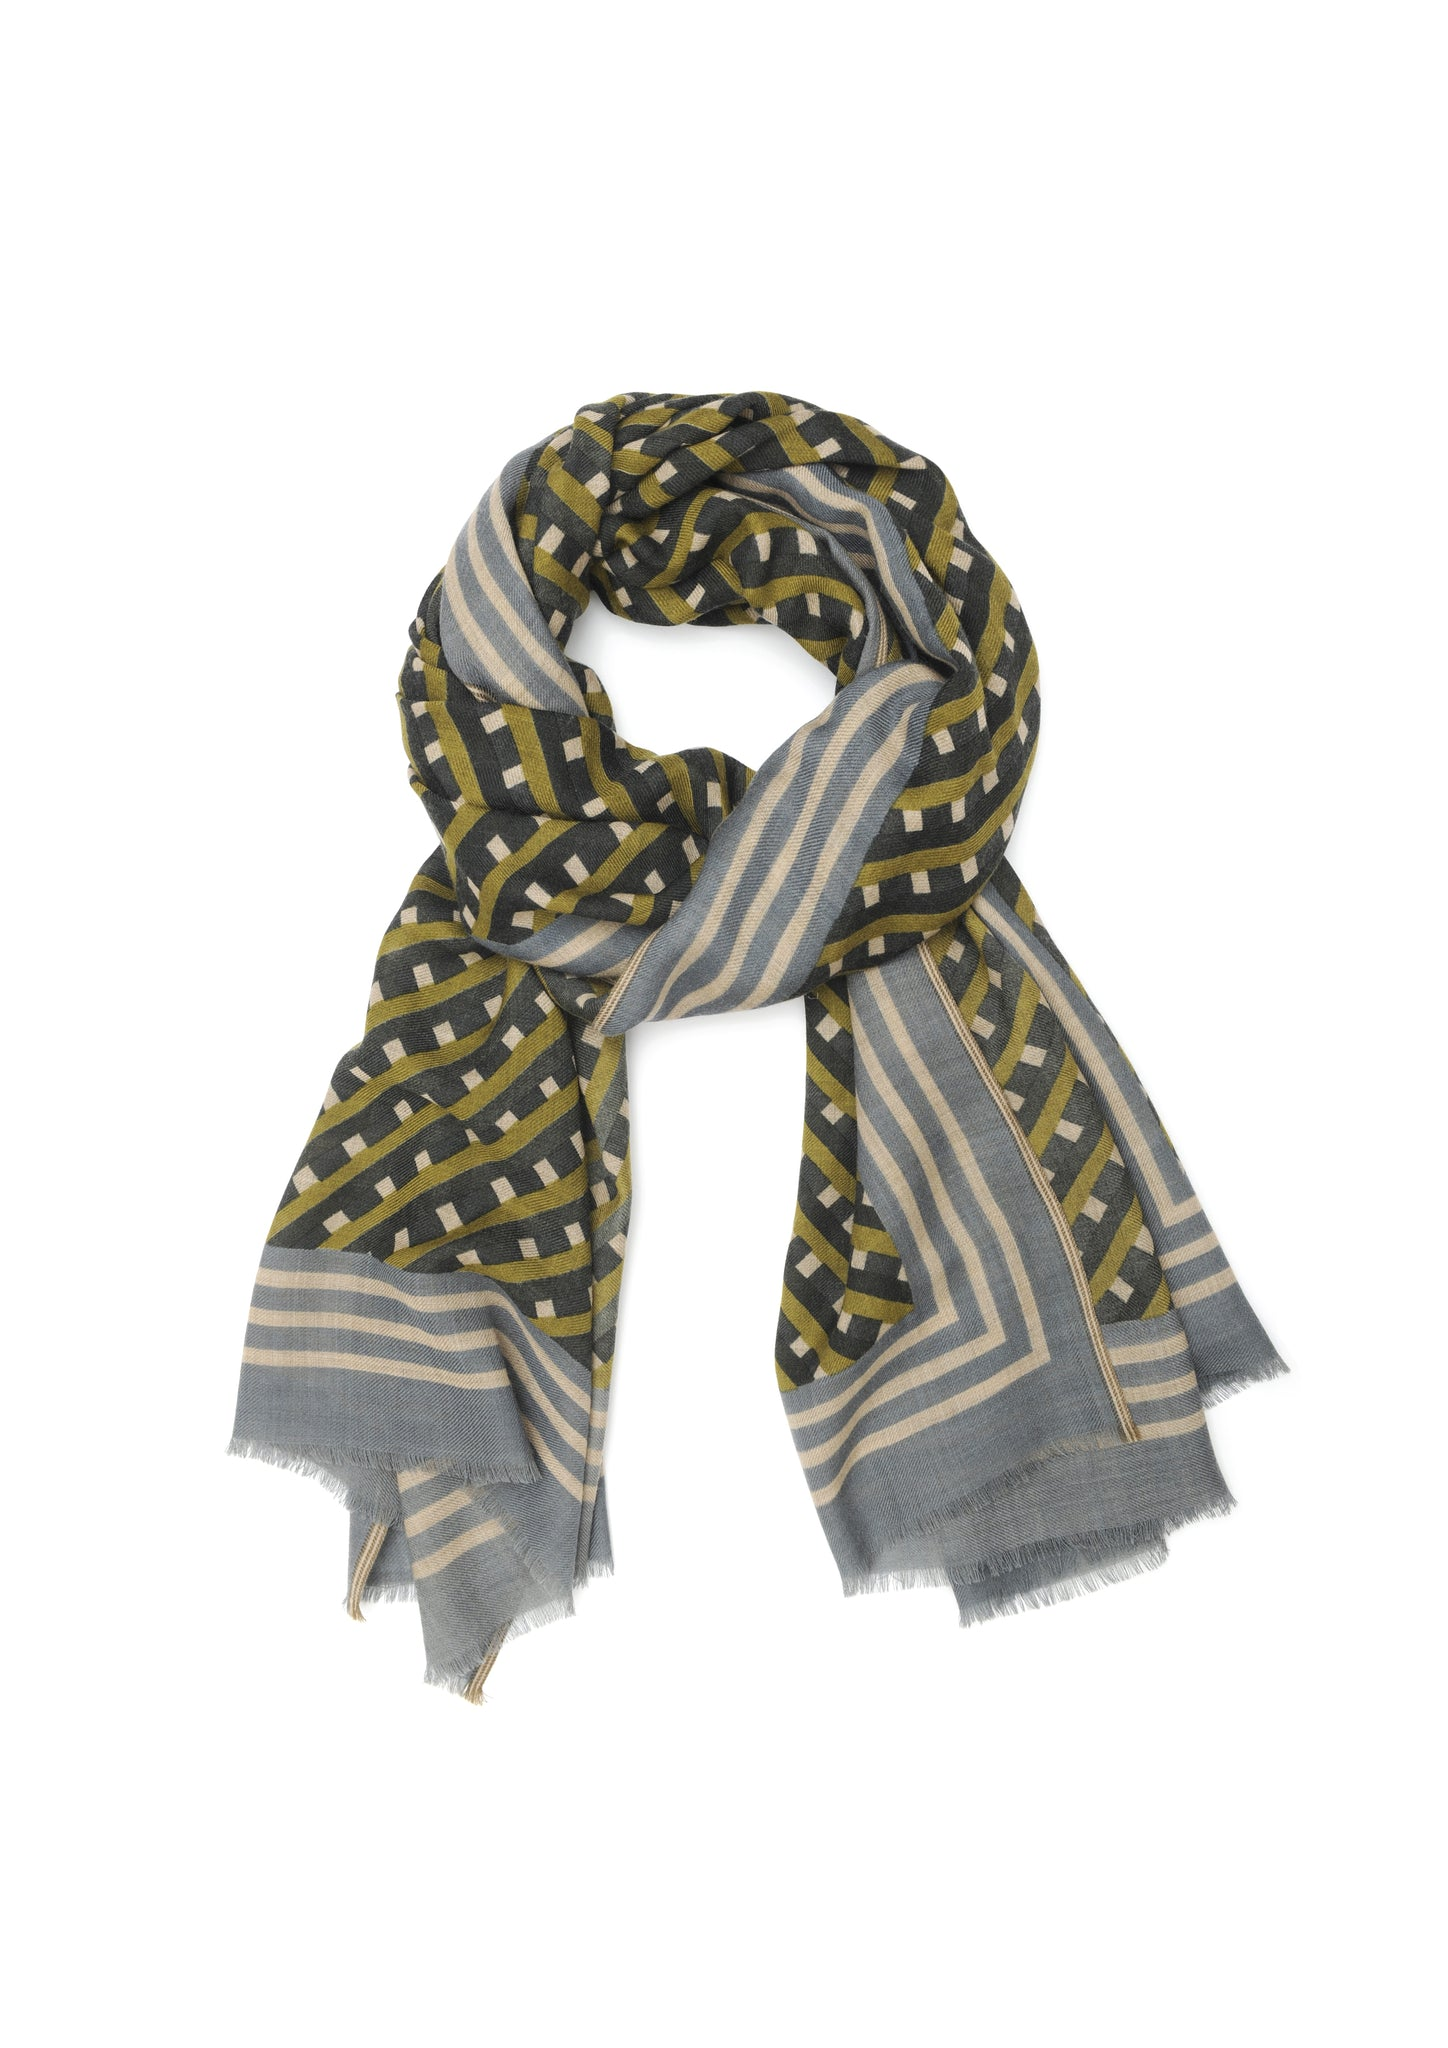 French 100% Wool Scarf - 378, Olive Green